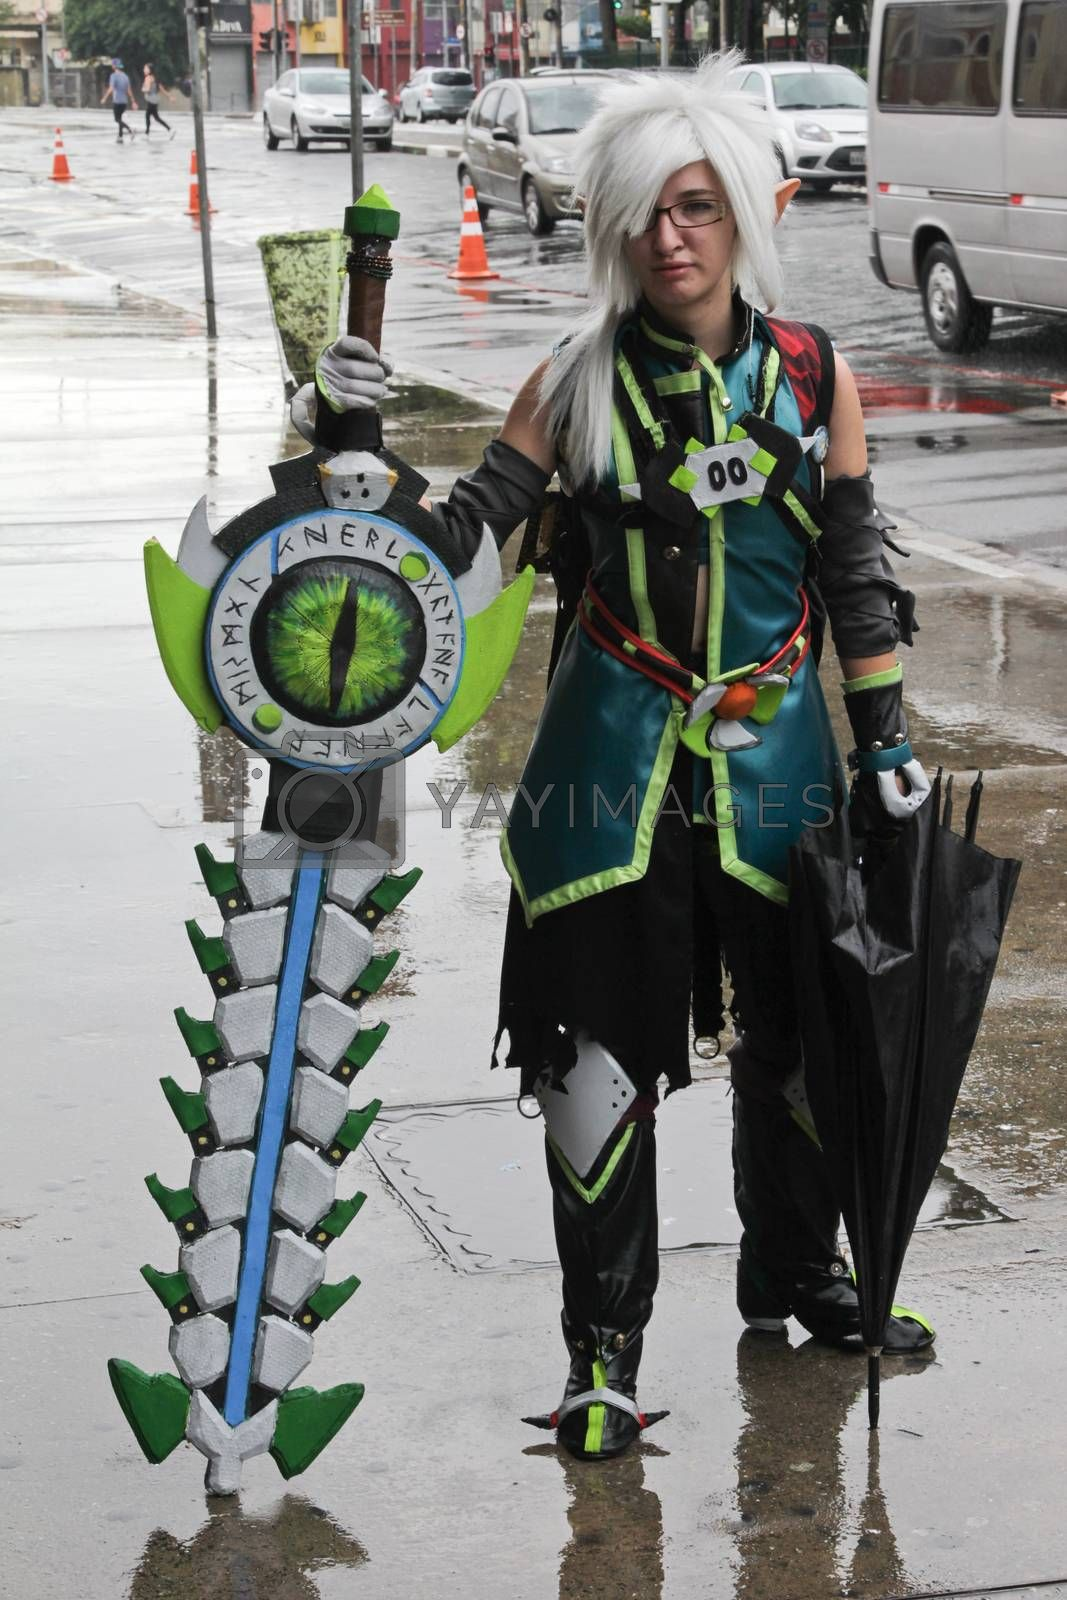 SAO PAULO, BRAZIL - MARCH 8, 2015: An unidentified girl cosplay with traditional costumes on the street of Sao Paulo Brazil.